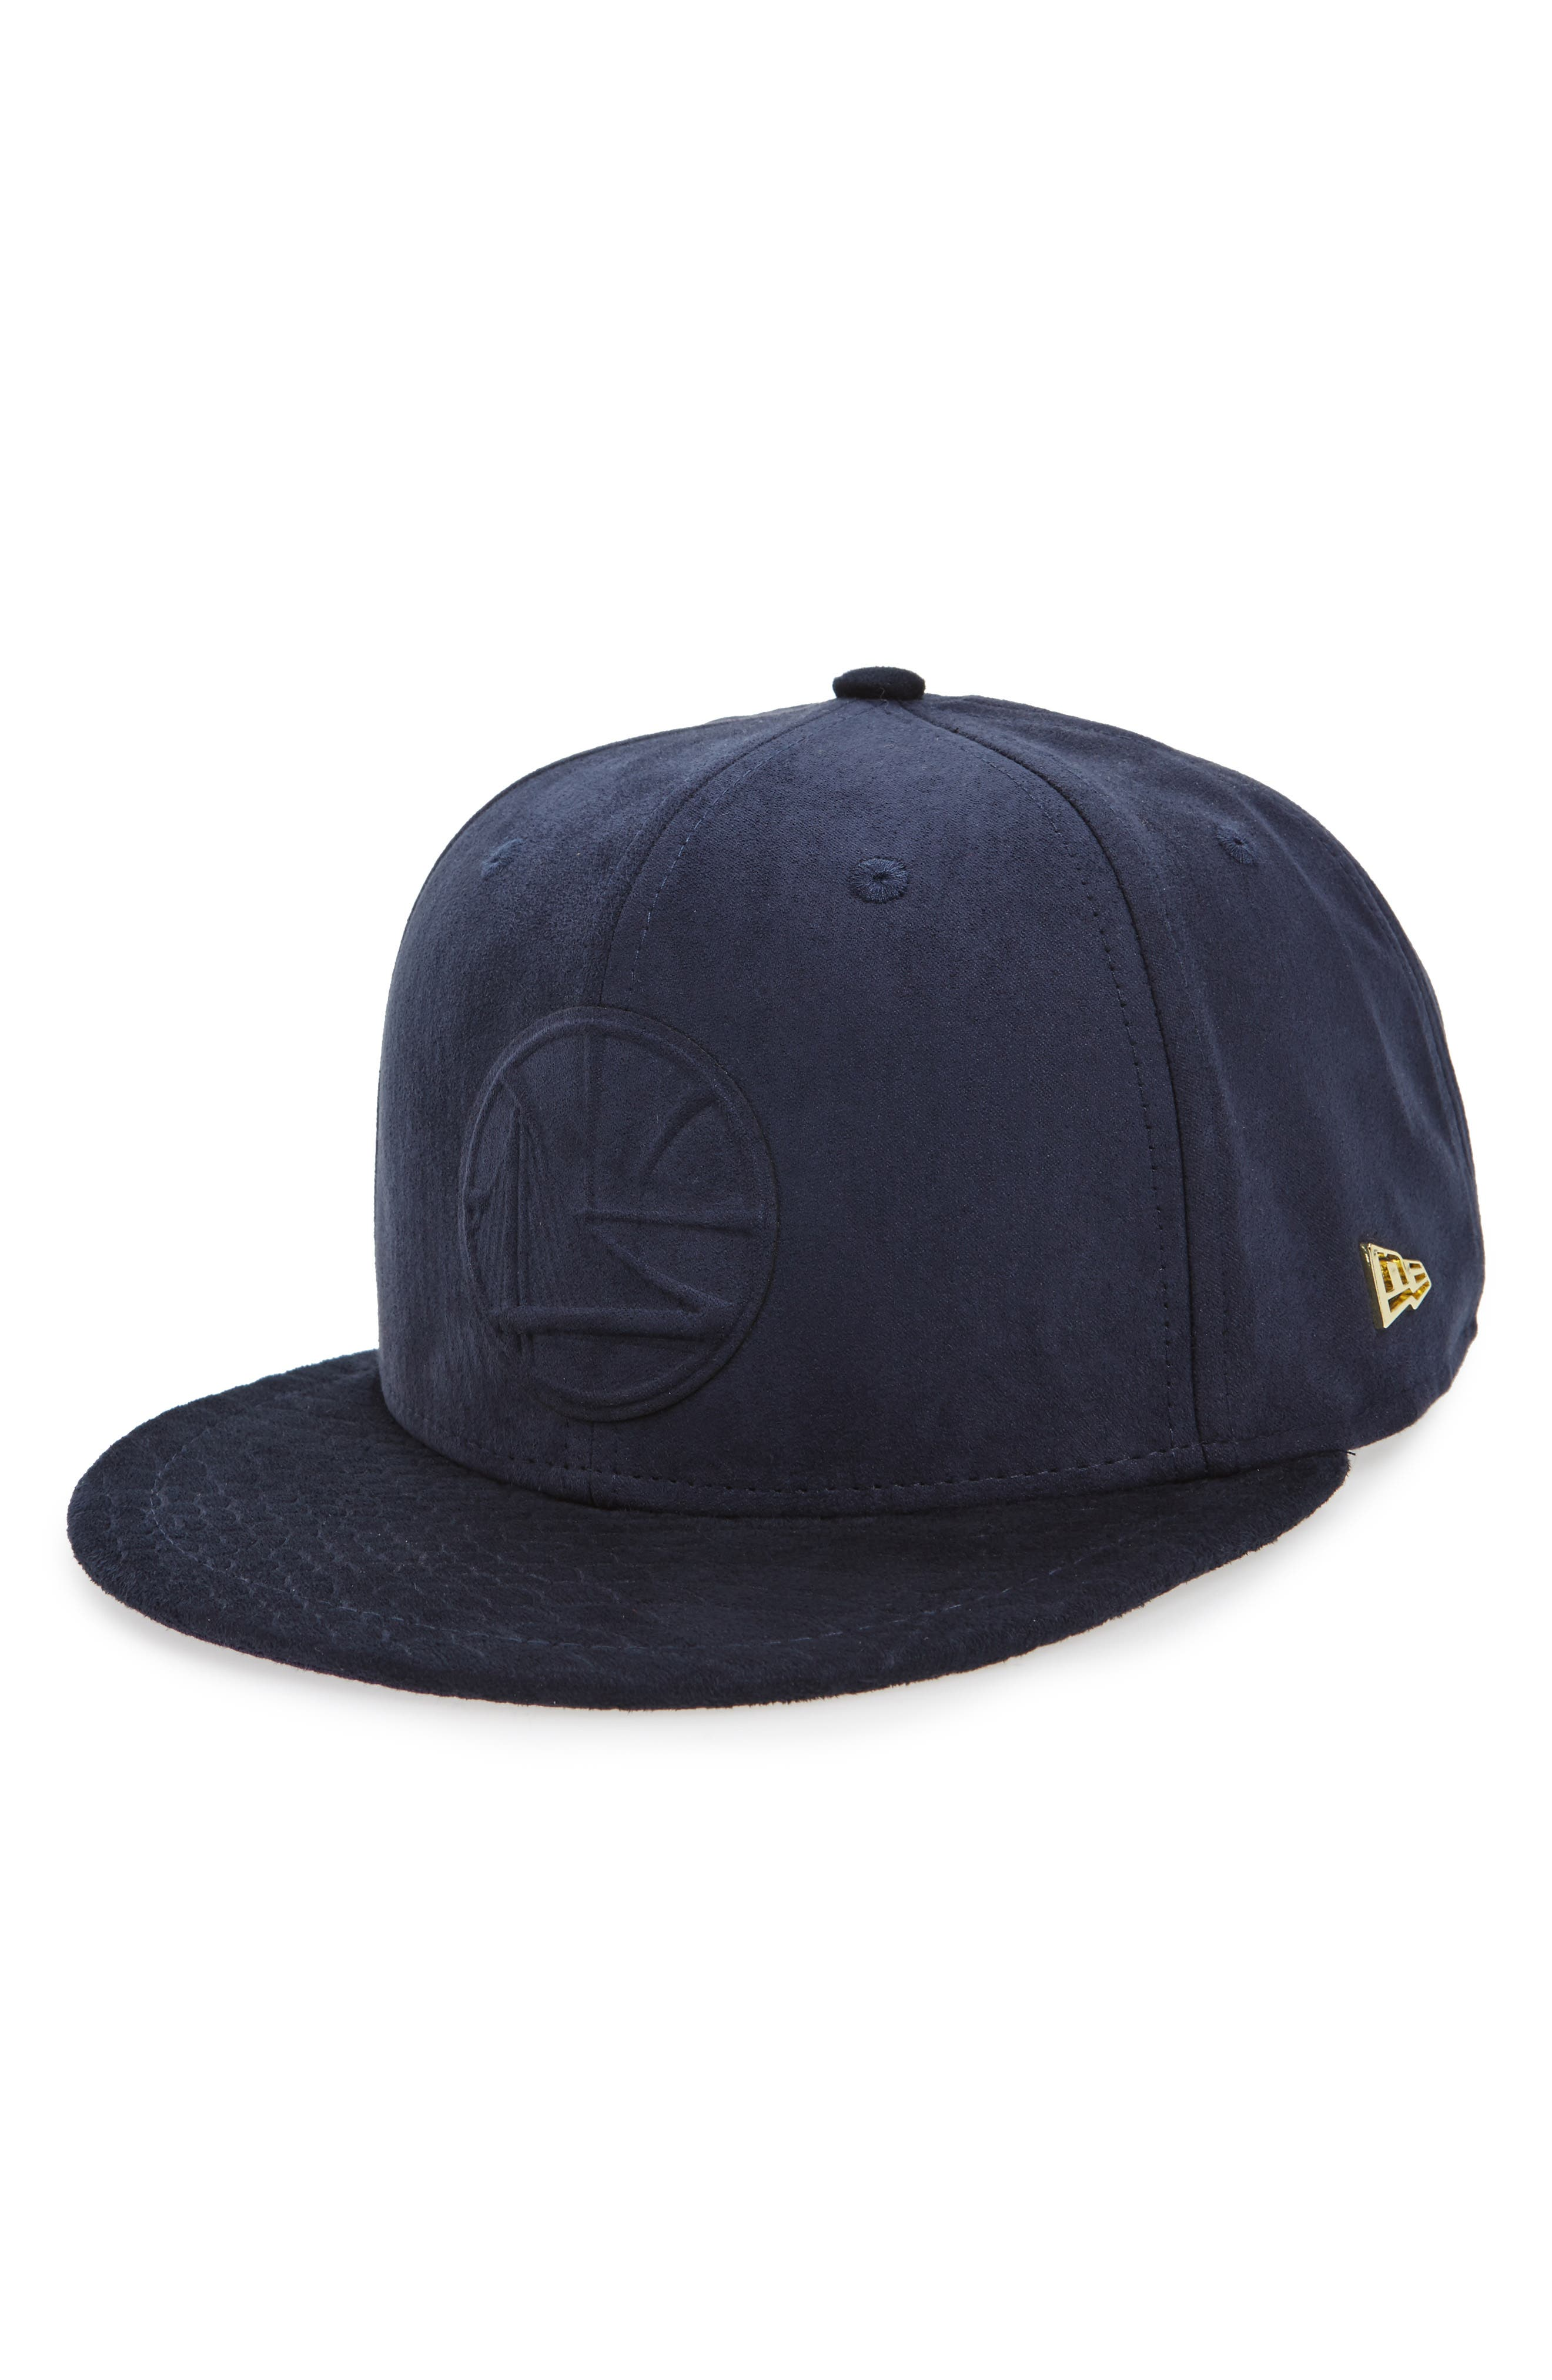 NBA Baseball Cap,                             Main thumbnail 1, color,                             005